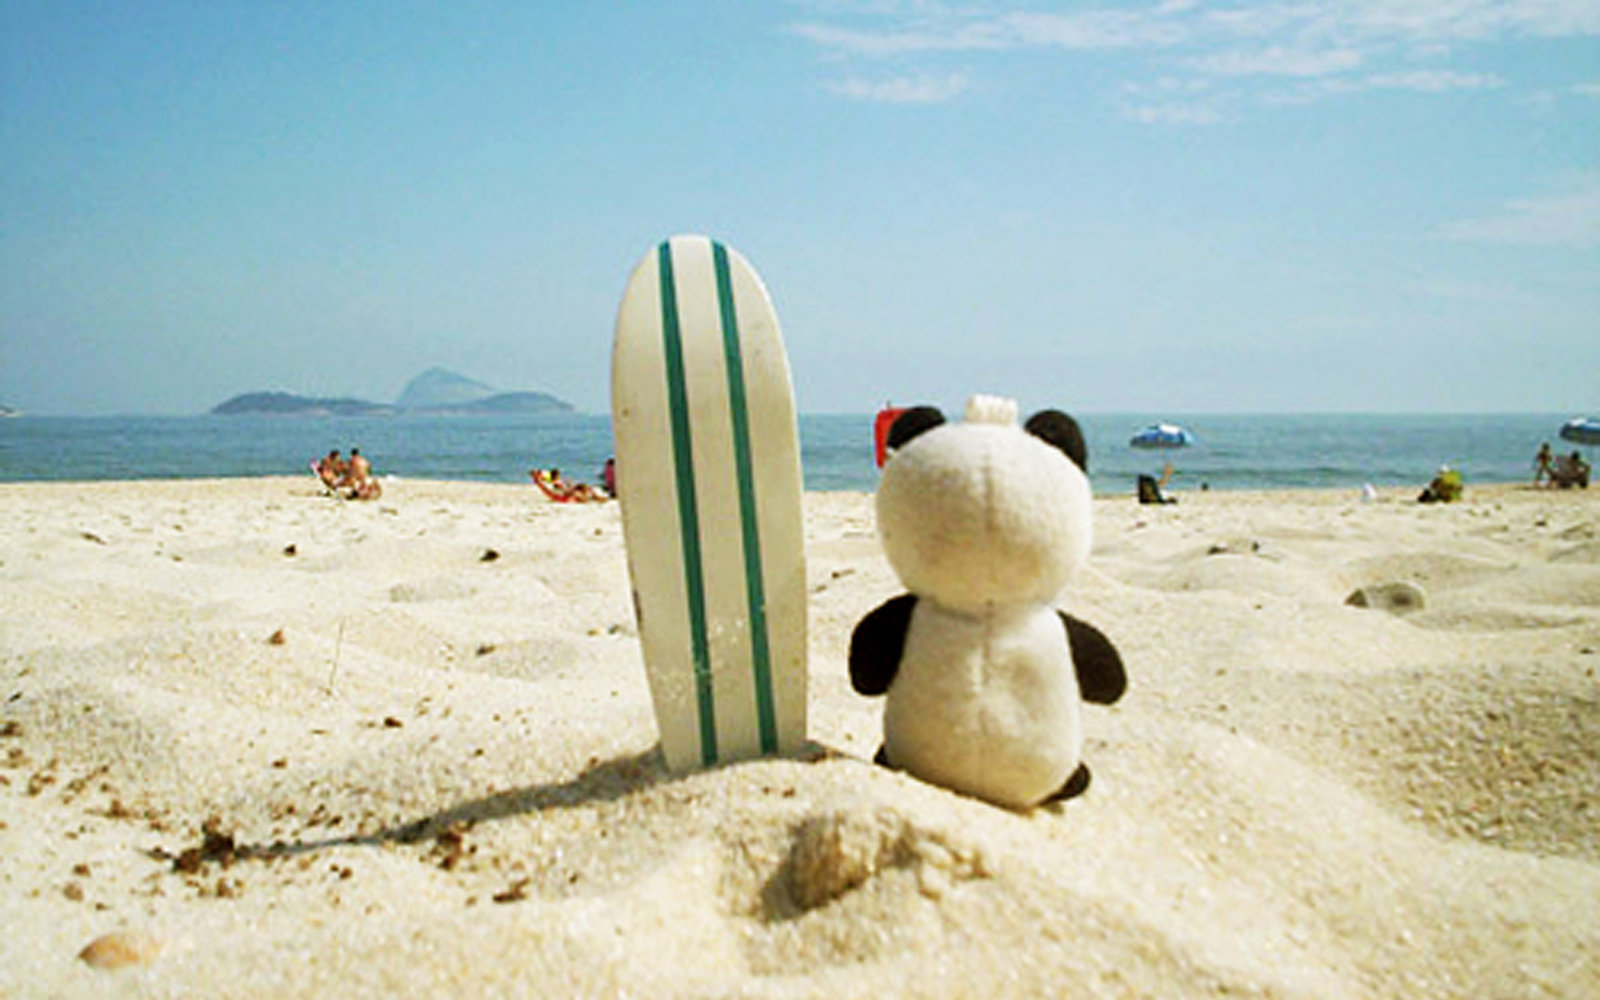 Send your stuffed animal on vacation with this travel agency travel